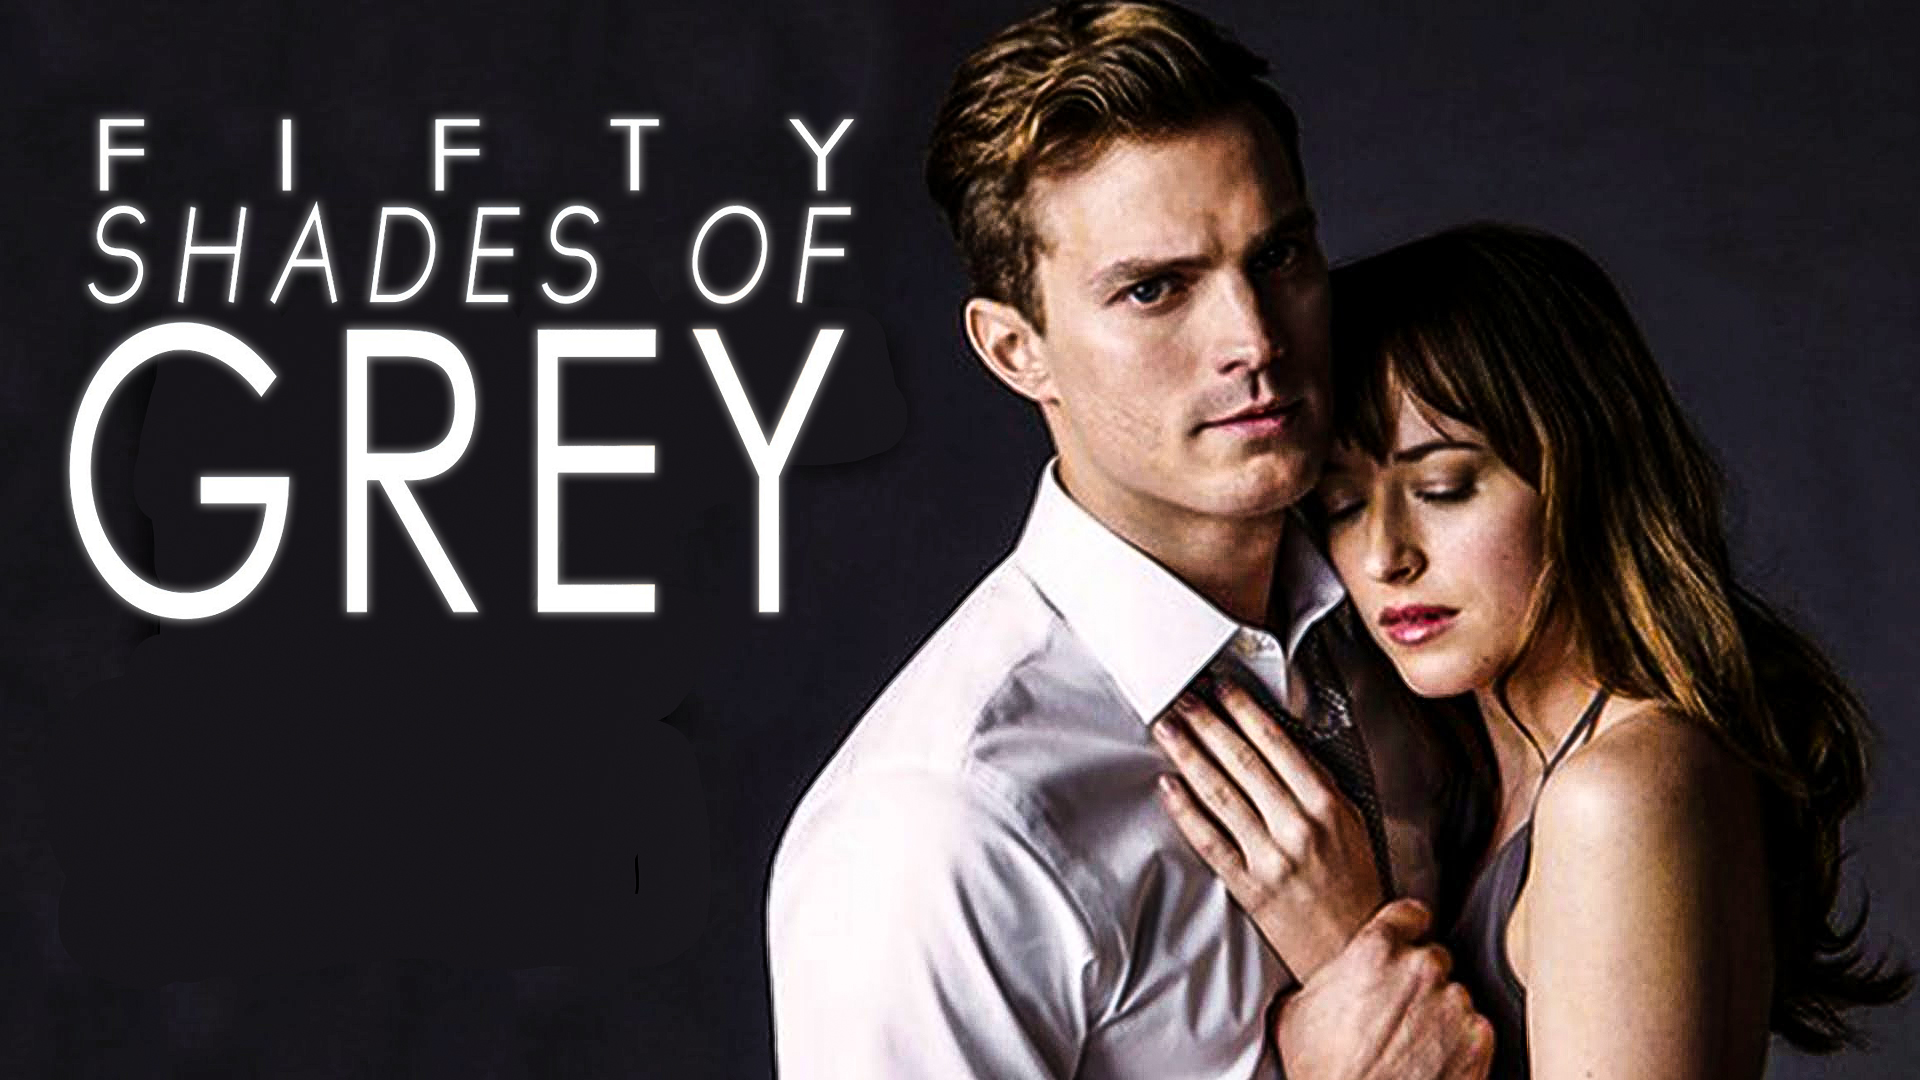 50-Shades-of-Grey-2015-Movie-Wallpaper.jpg